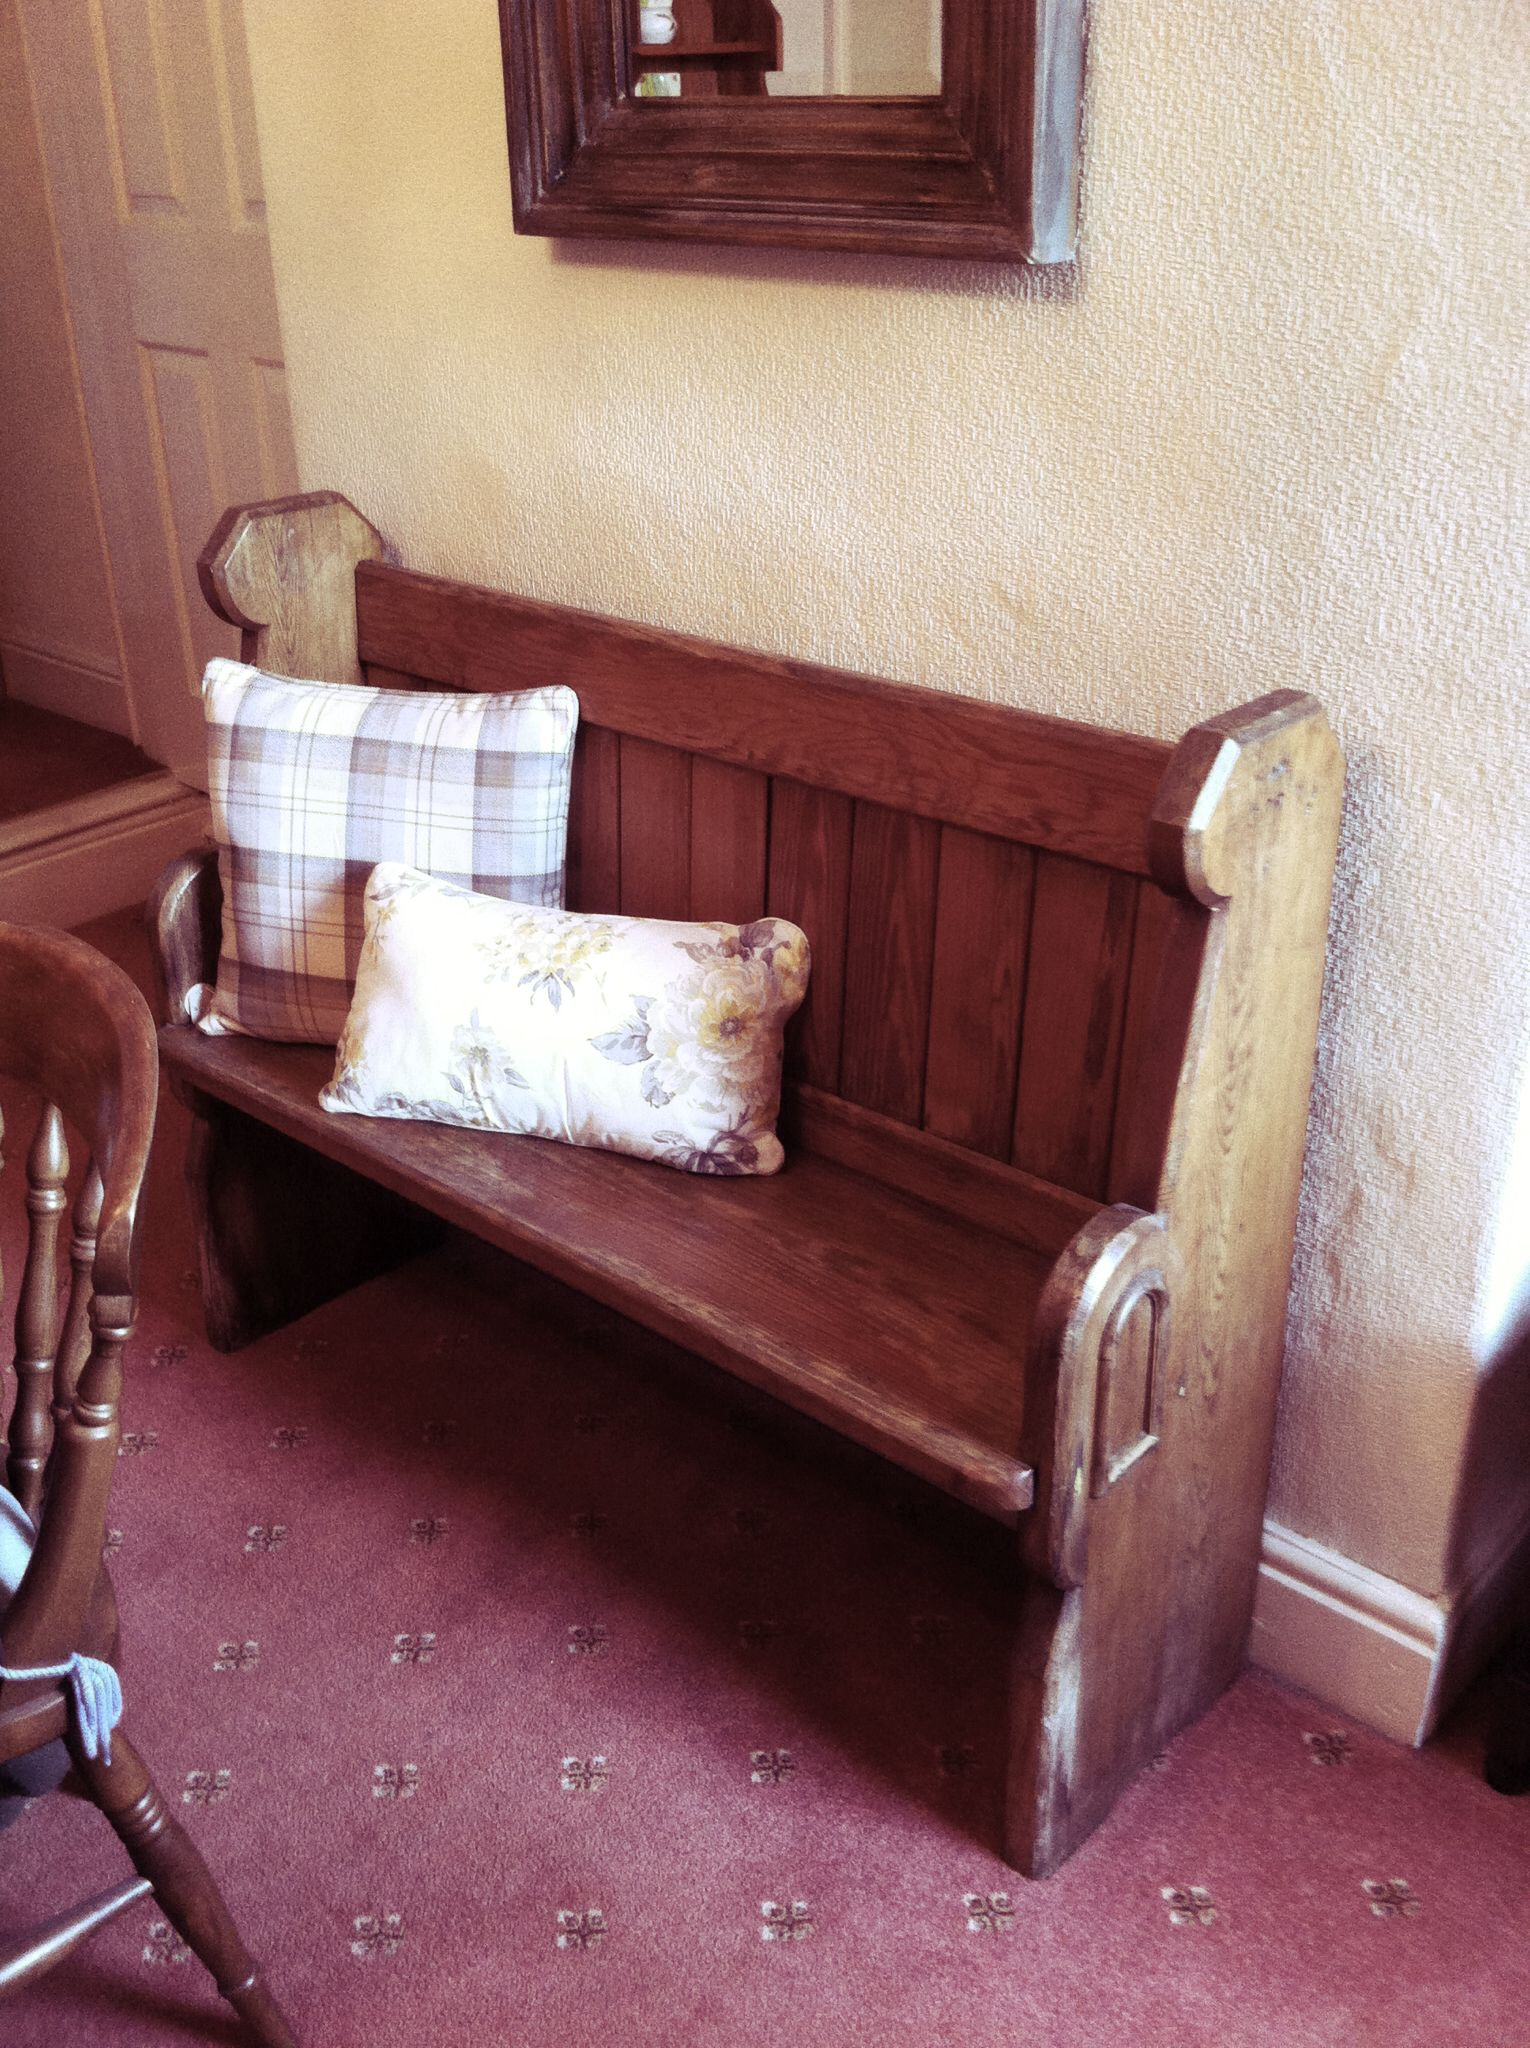 Church pew in our home